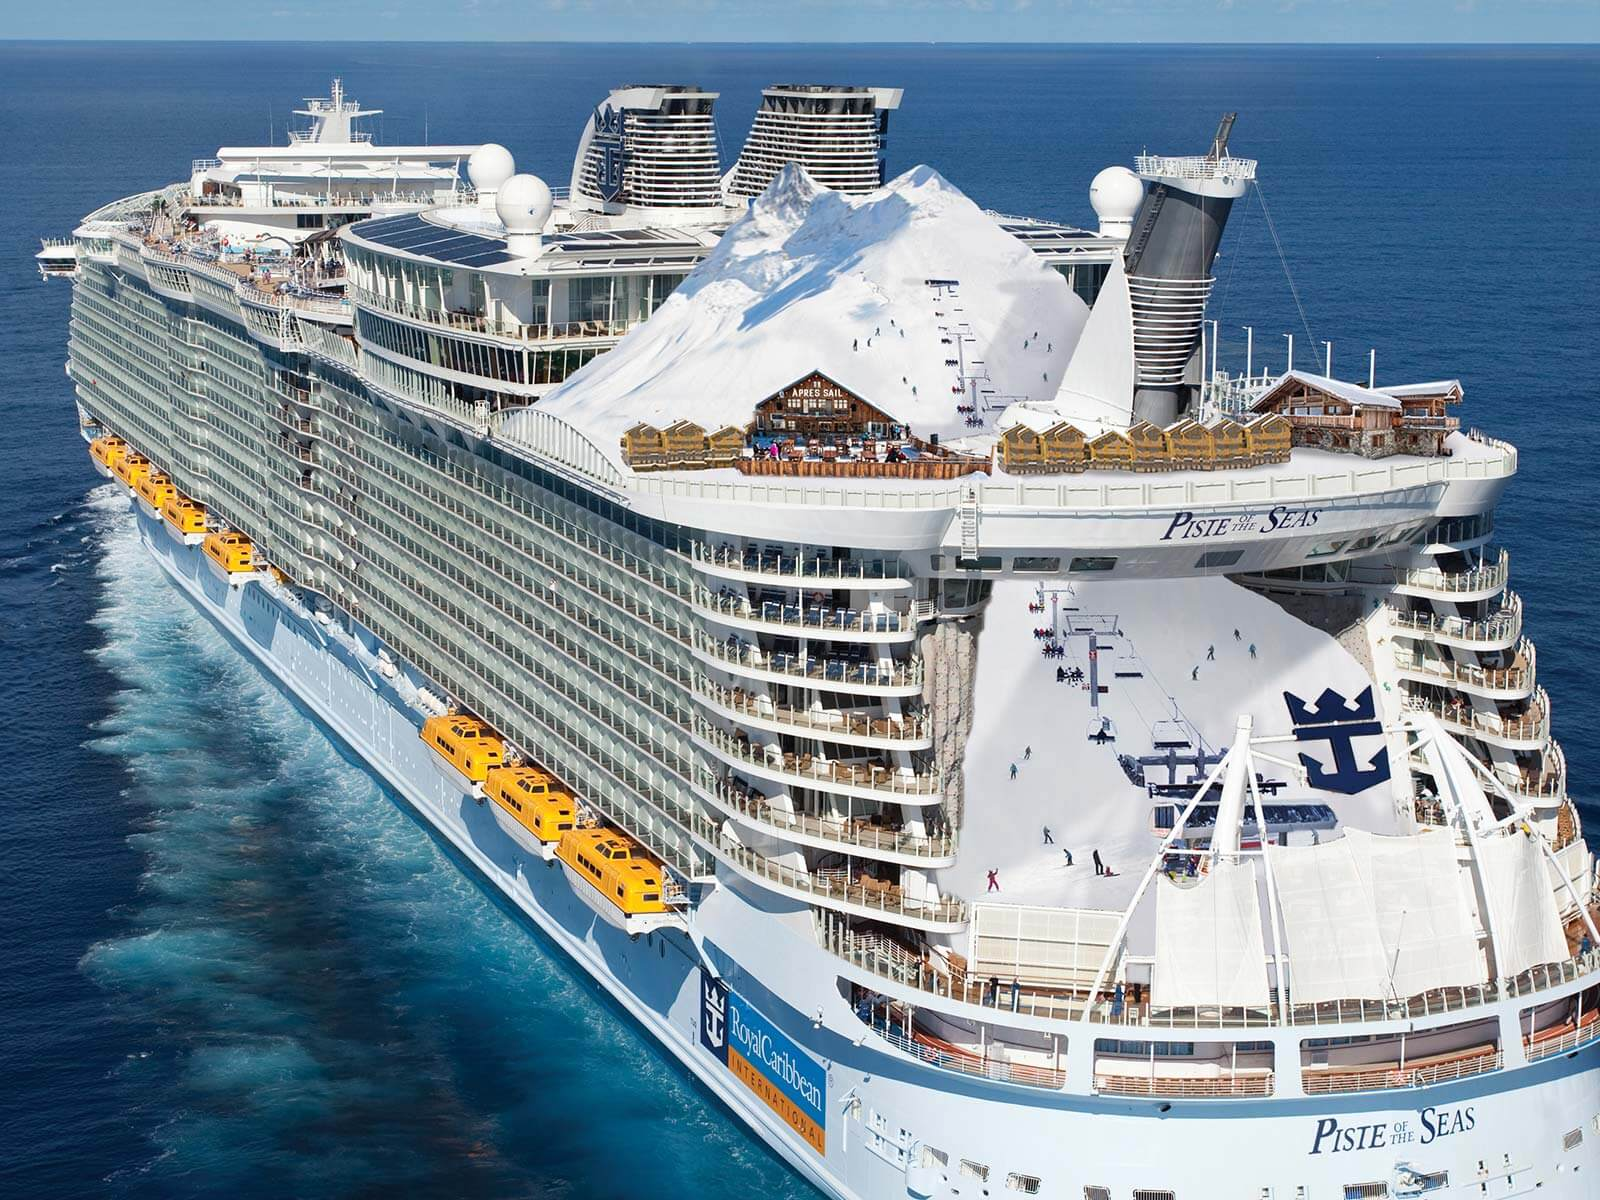 «Дочка» Royal Caribbean в Испании продаст три круизных лайнера на металлолом из-за последствий пандемии